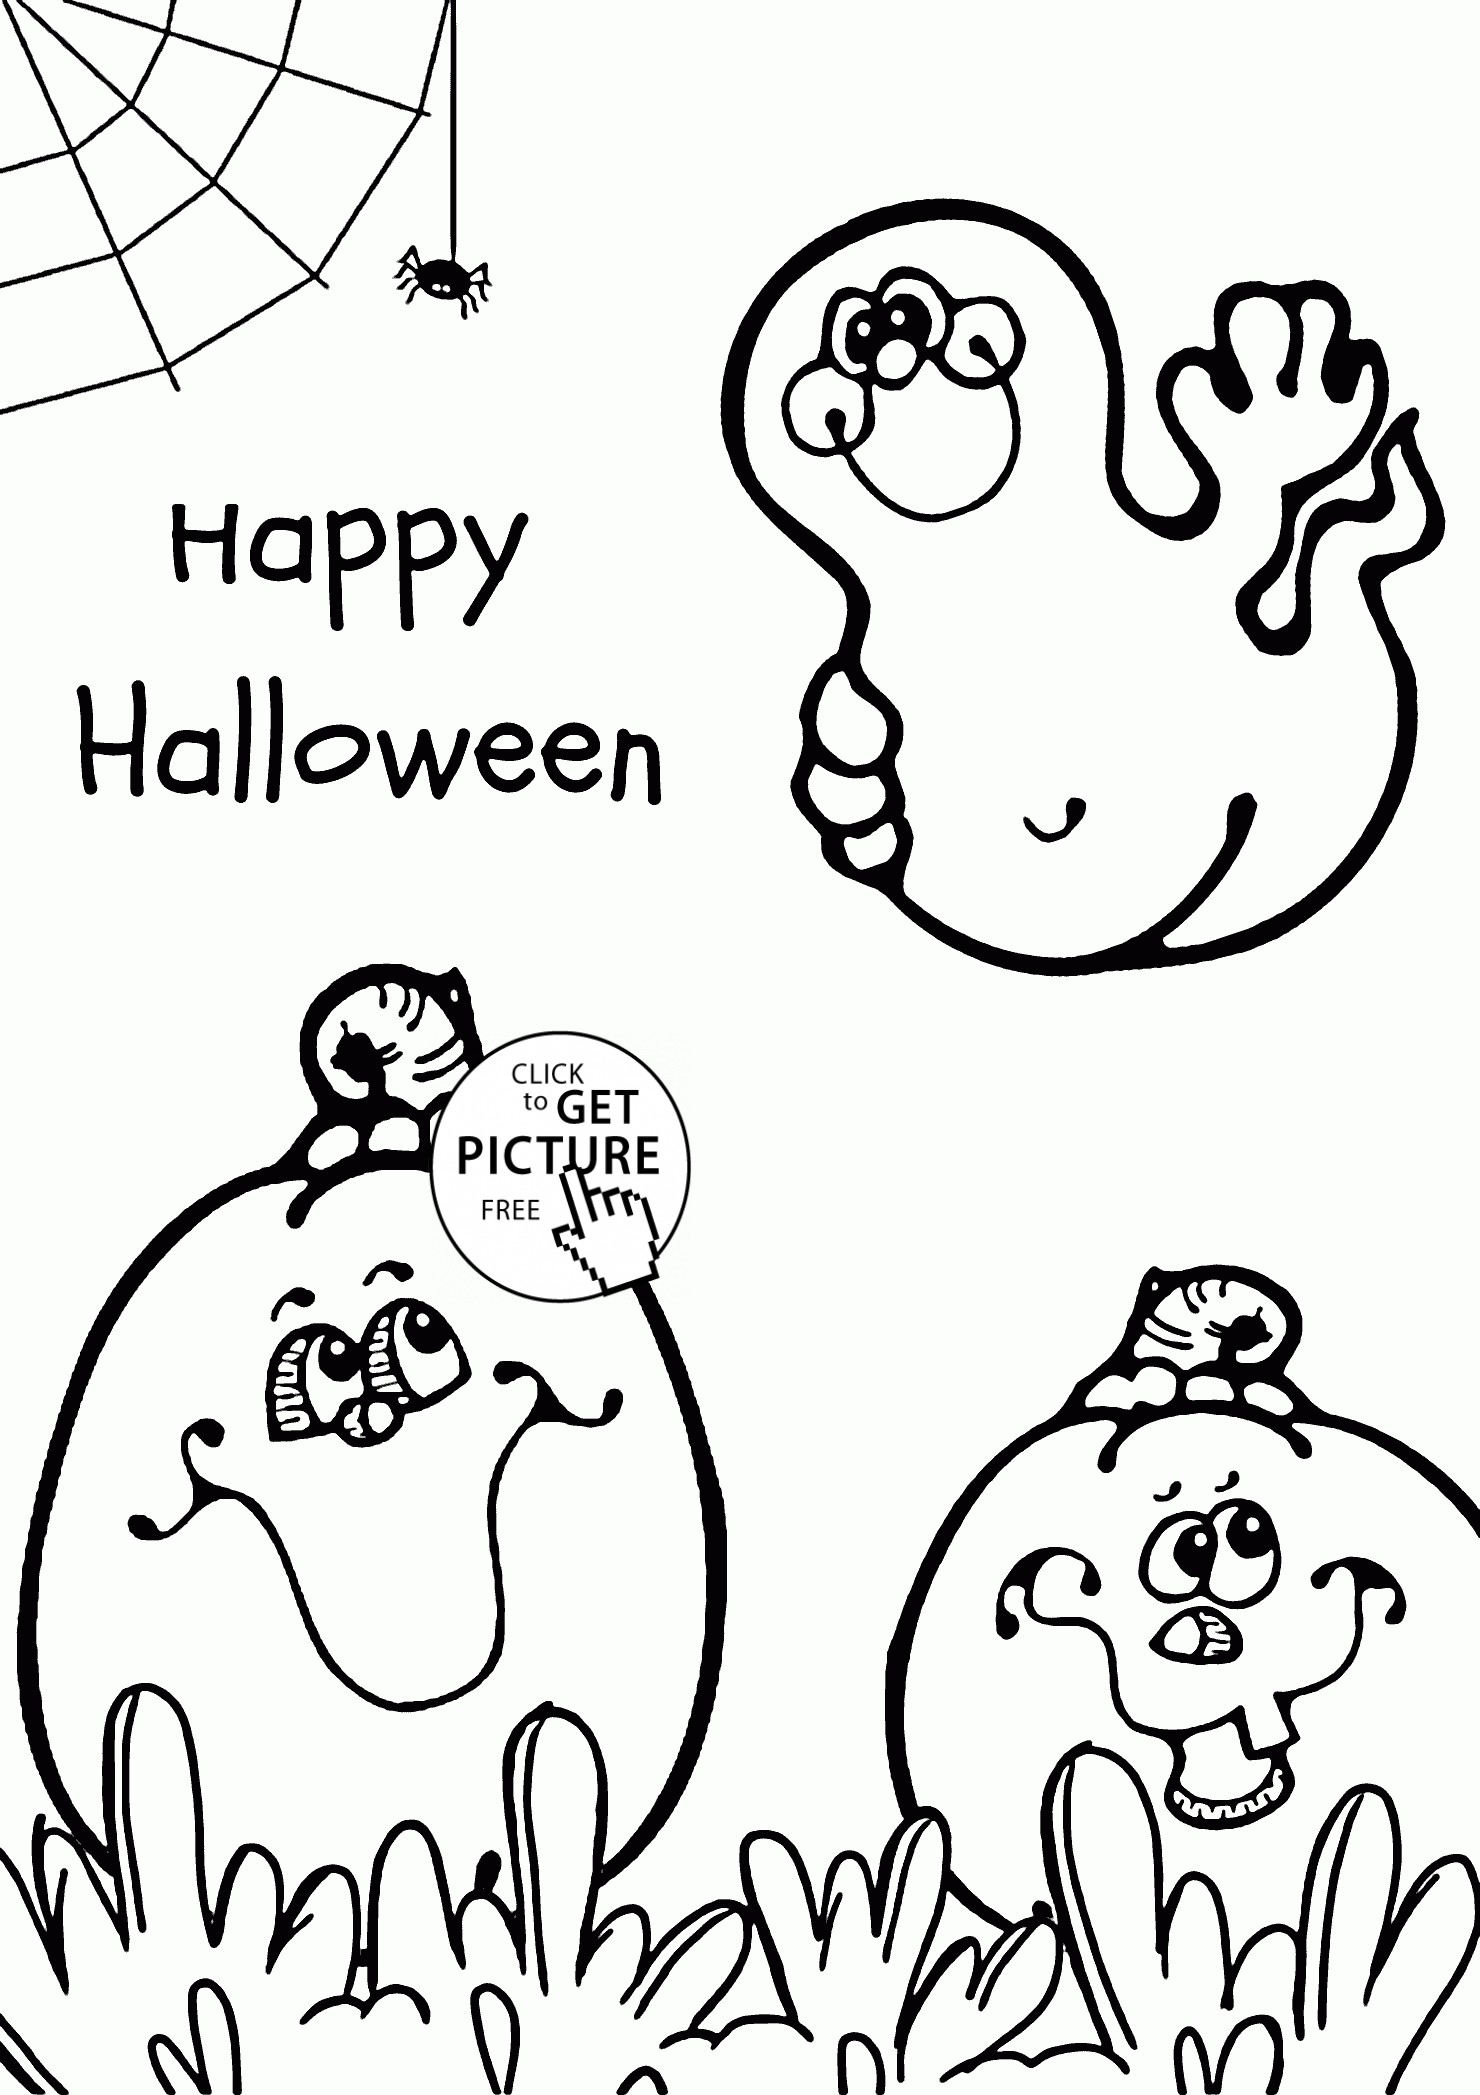 Cute Halloween Coloring Pages Lovely Cute Halloween Coloring Pages 14 For Your Line Drawings With